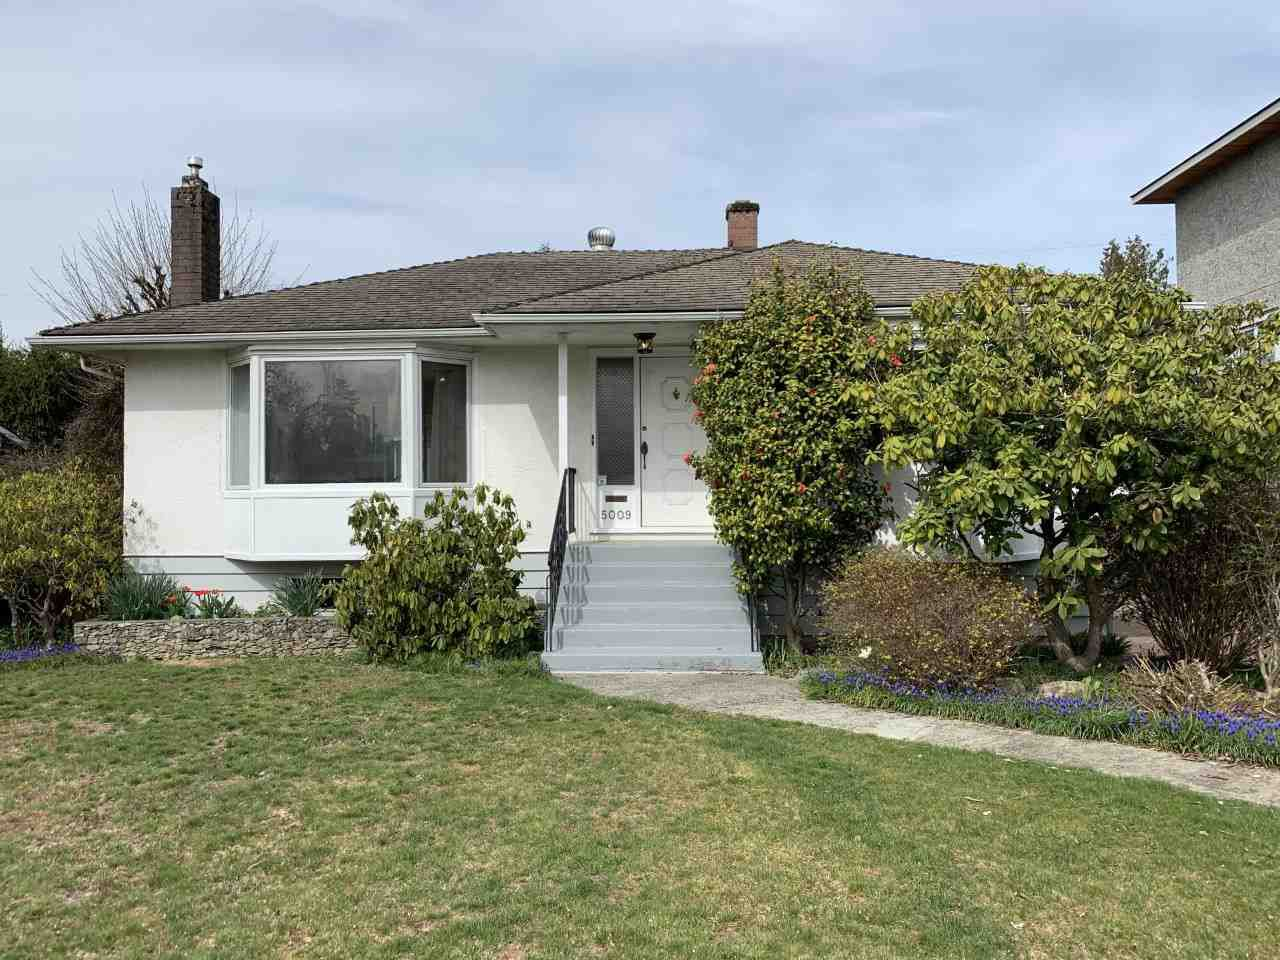 Main Photo: 5009 LAUREL Street in Burnaby: Greentree Village House for sale (Burnaby South)  : MLS®# R2340961